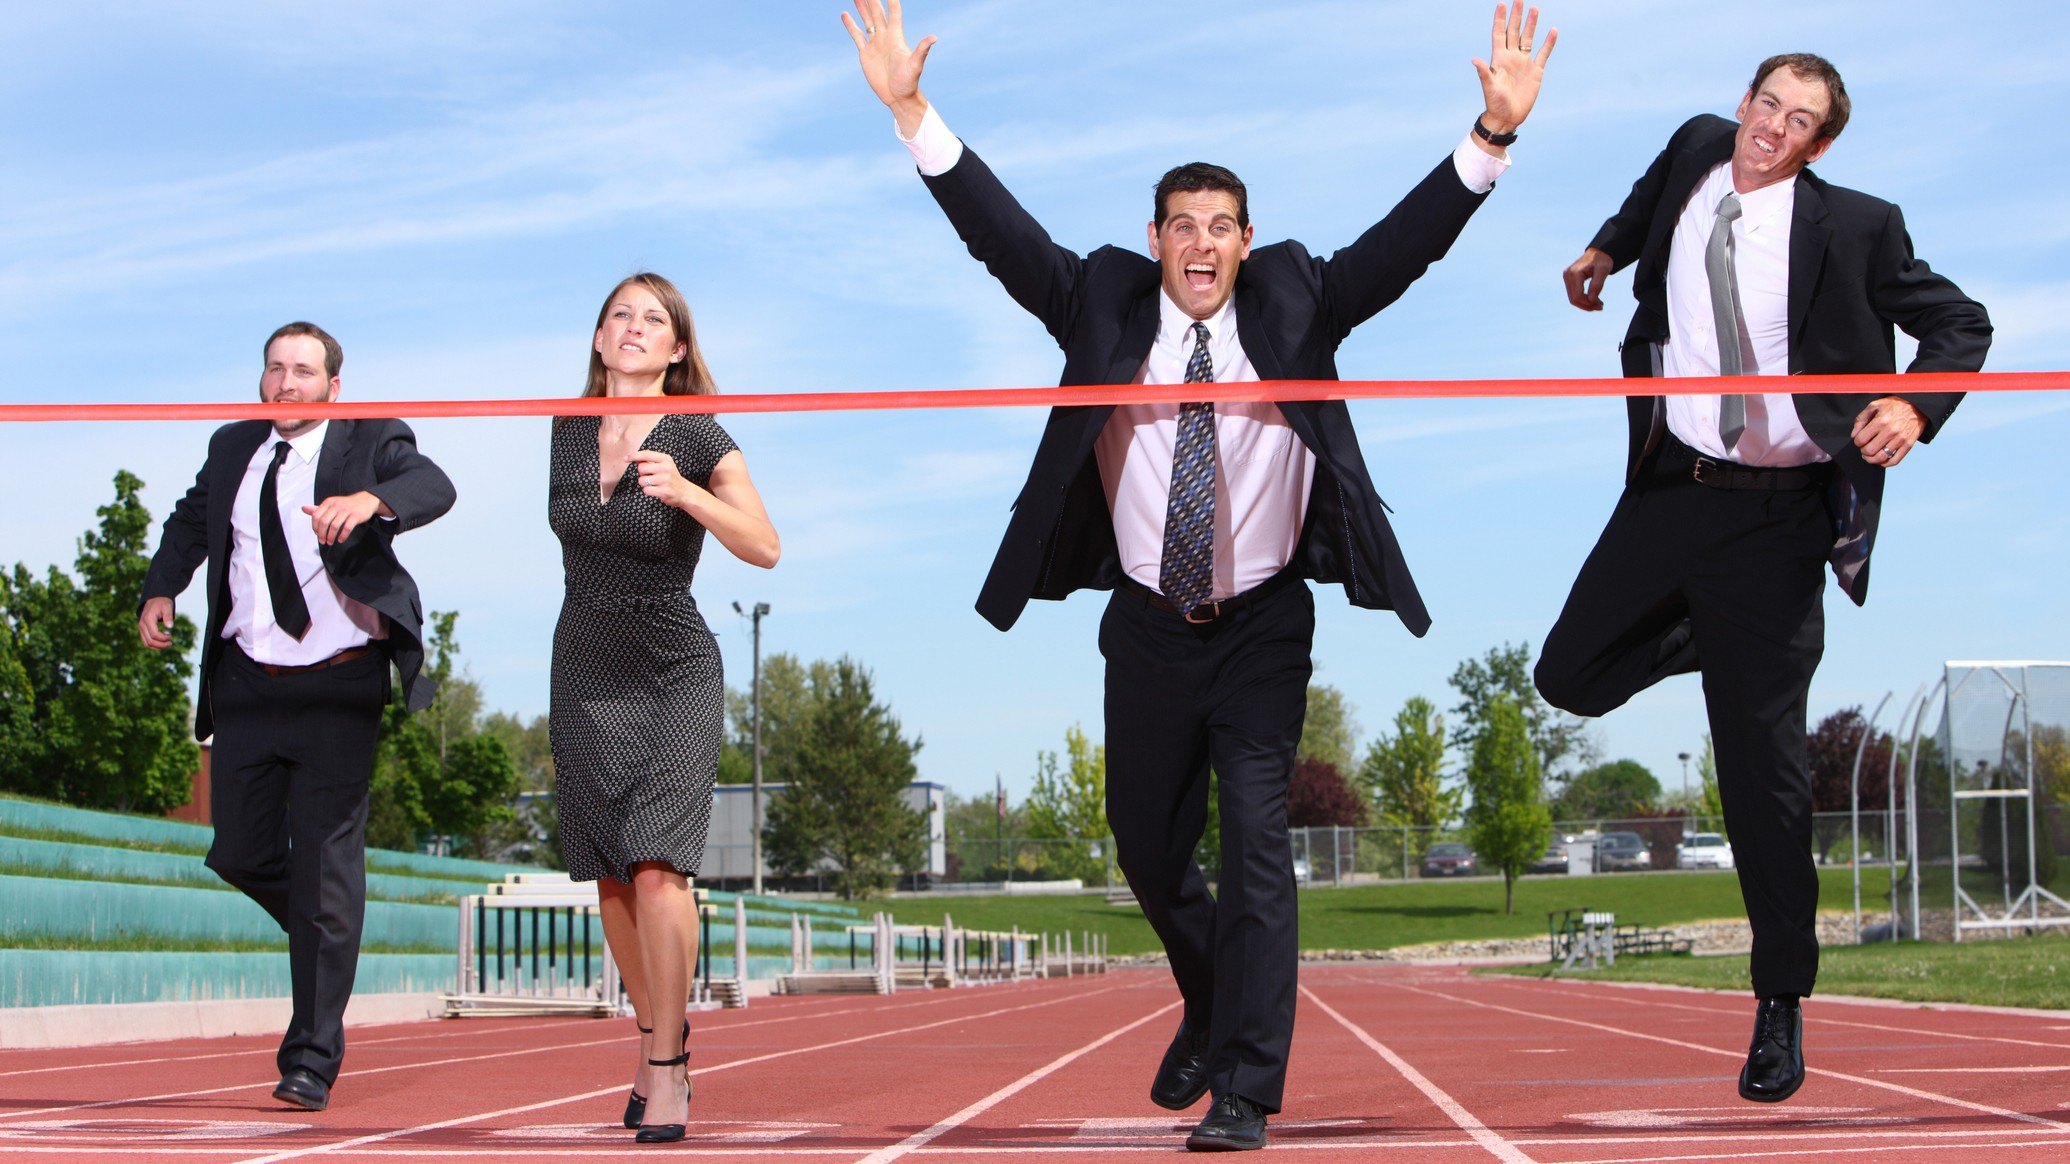 asx shares represented by bankers approaching finish line in a race